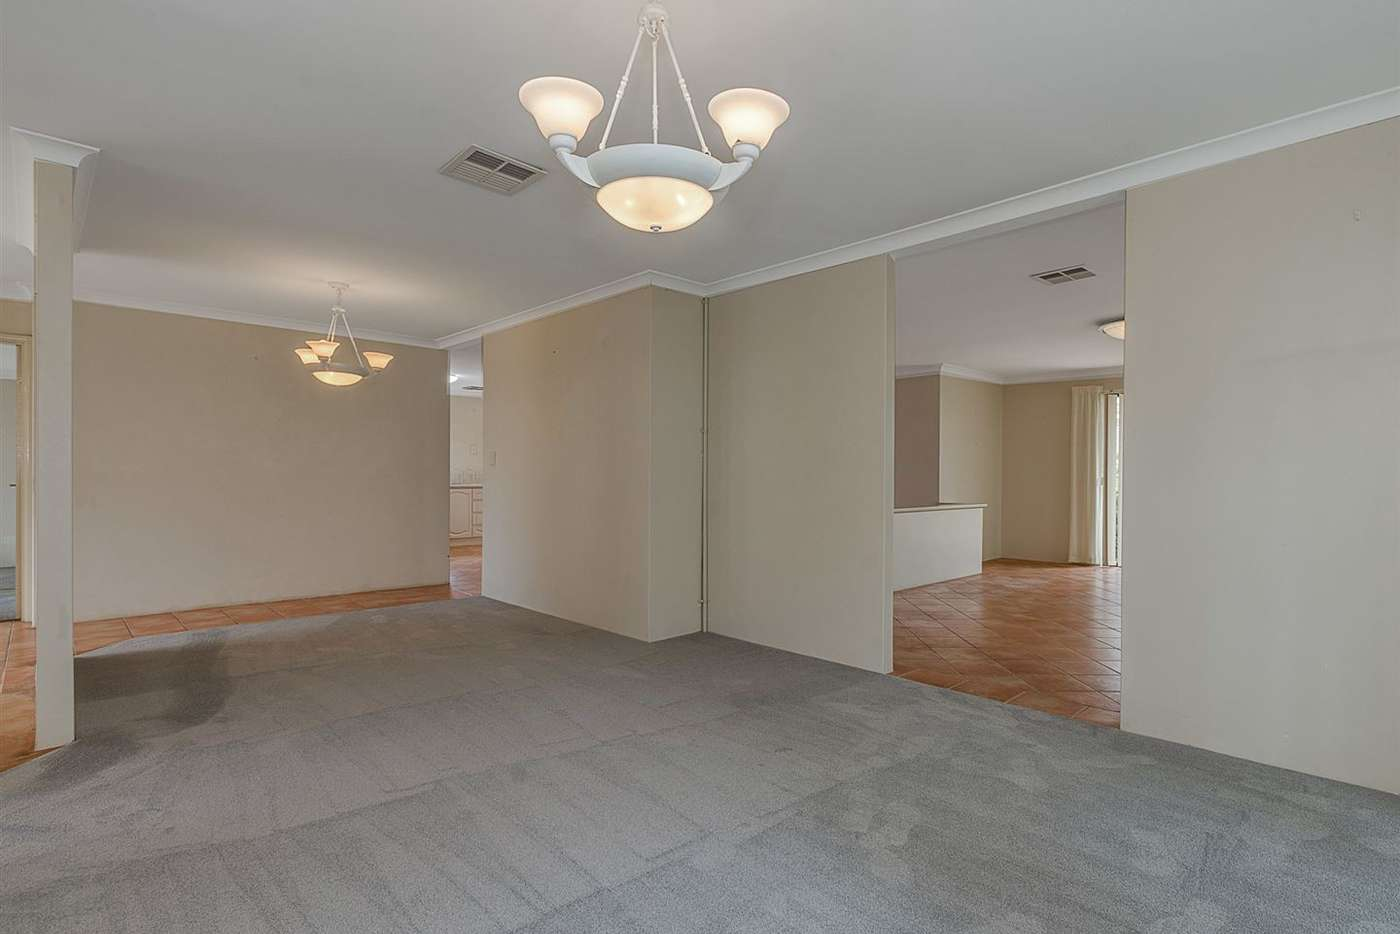 Sixth view of Homely house listing, 6 Lexington Heights, Currambine WA 6028